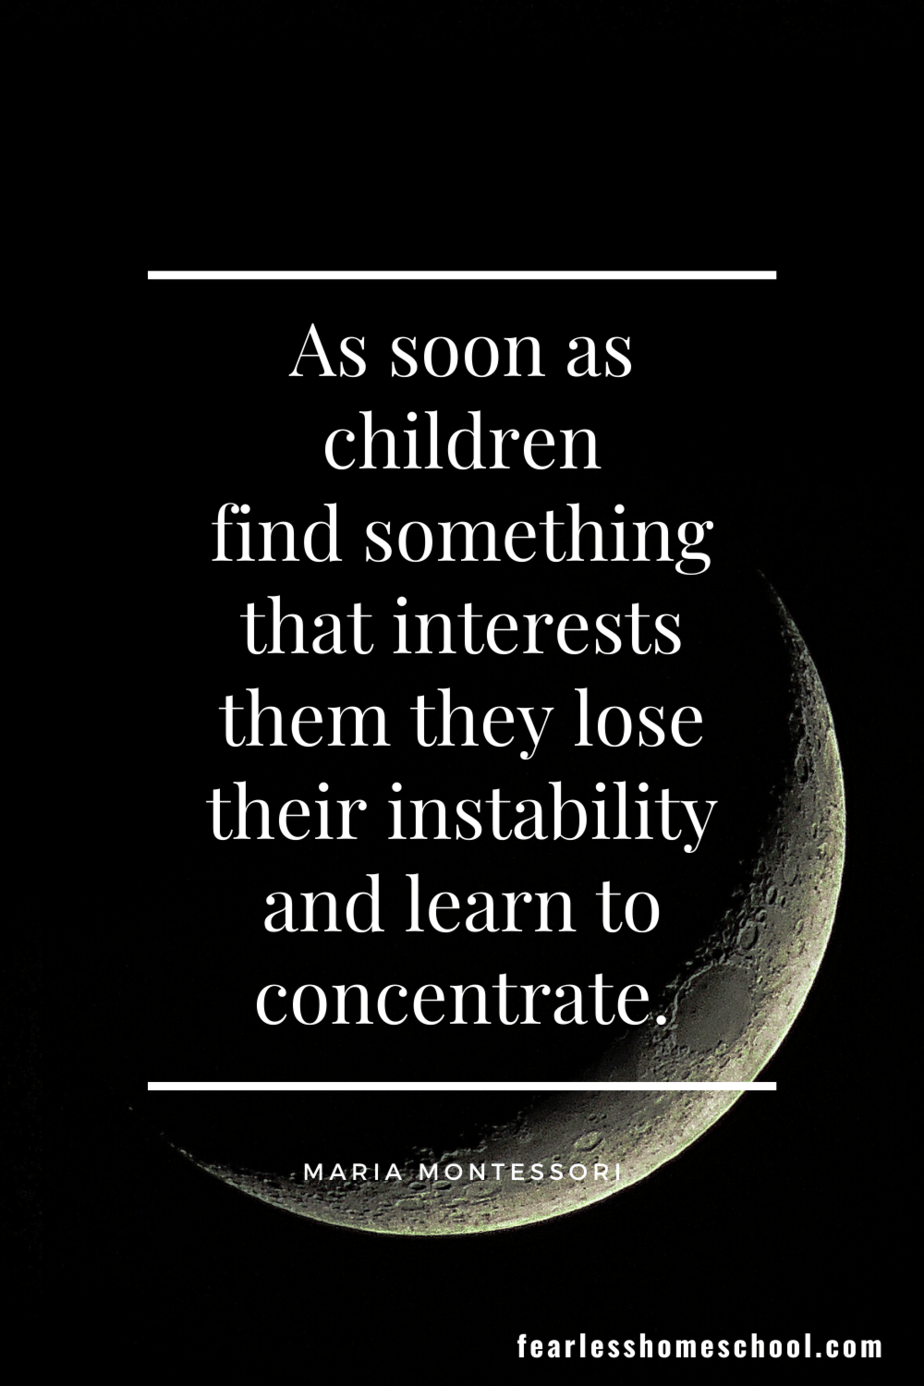 As soon as children find something that interests them they lose their instability and learn to concentrate. Maria Montessori homeschooling quote